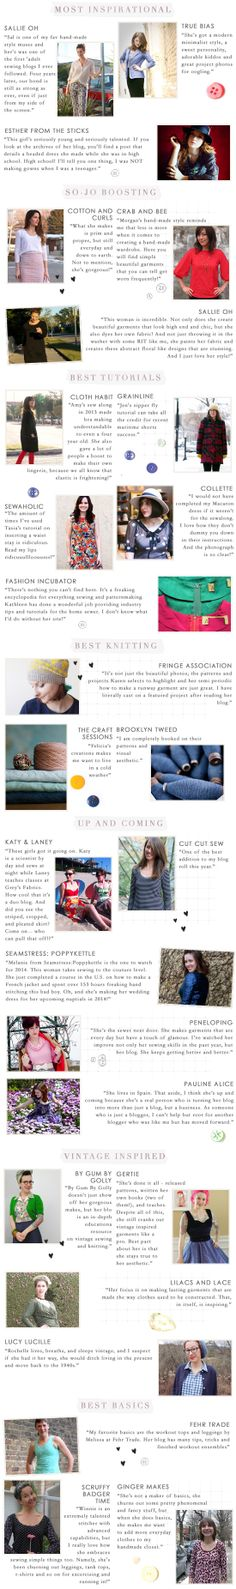 best sewing blogs 2014